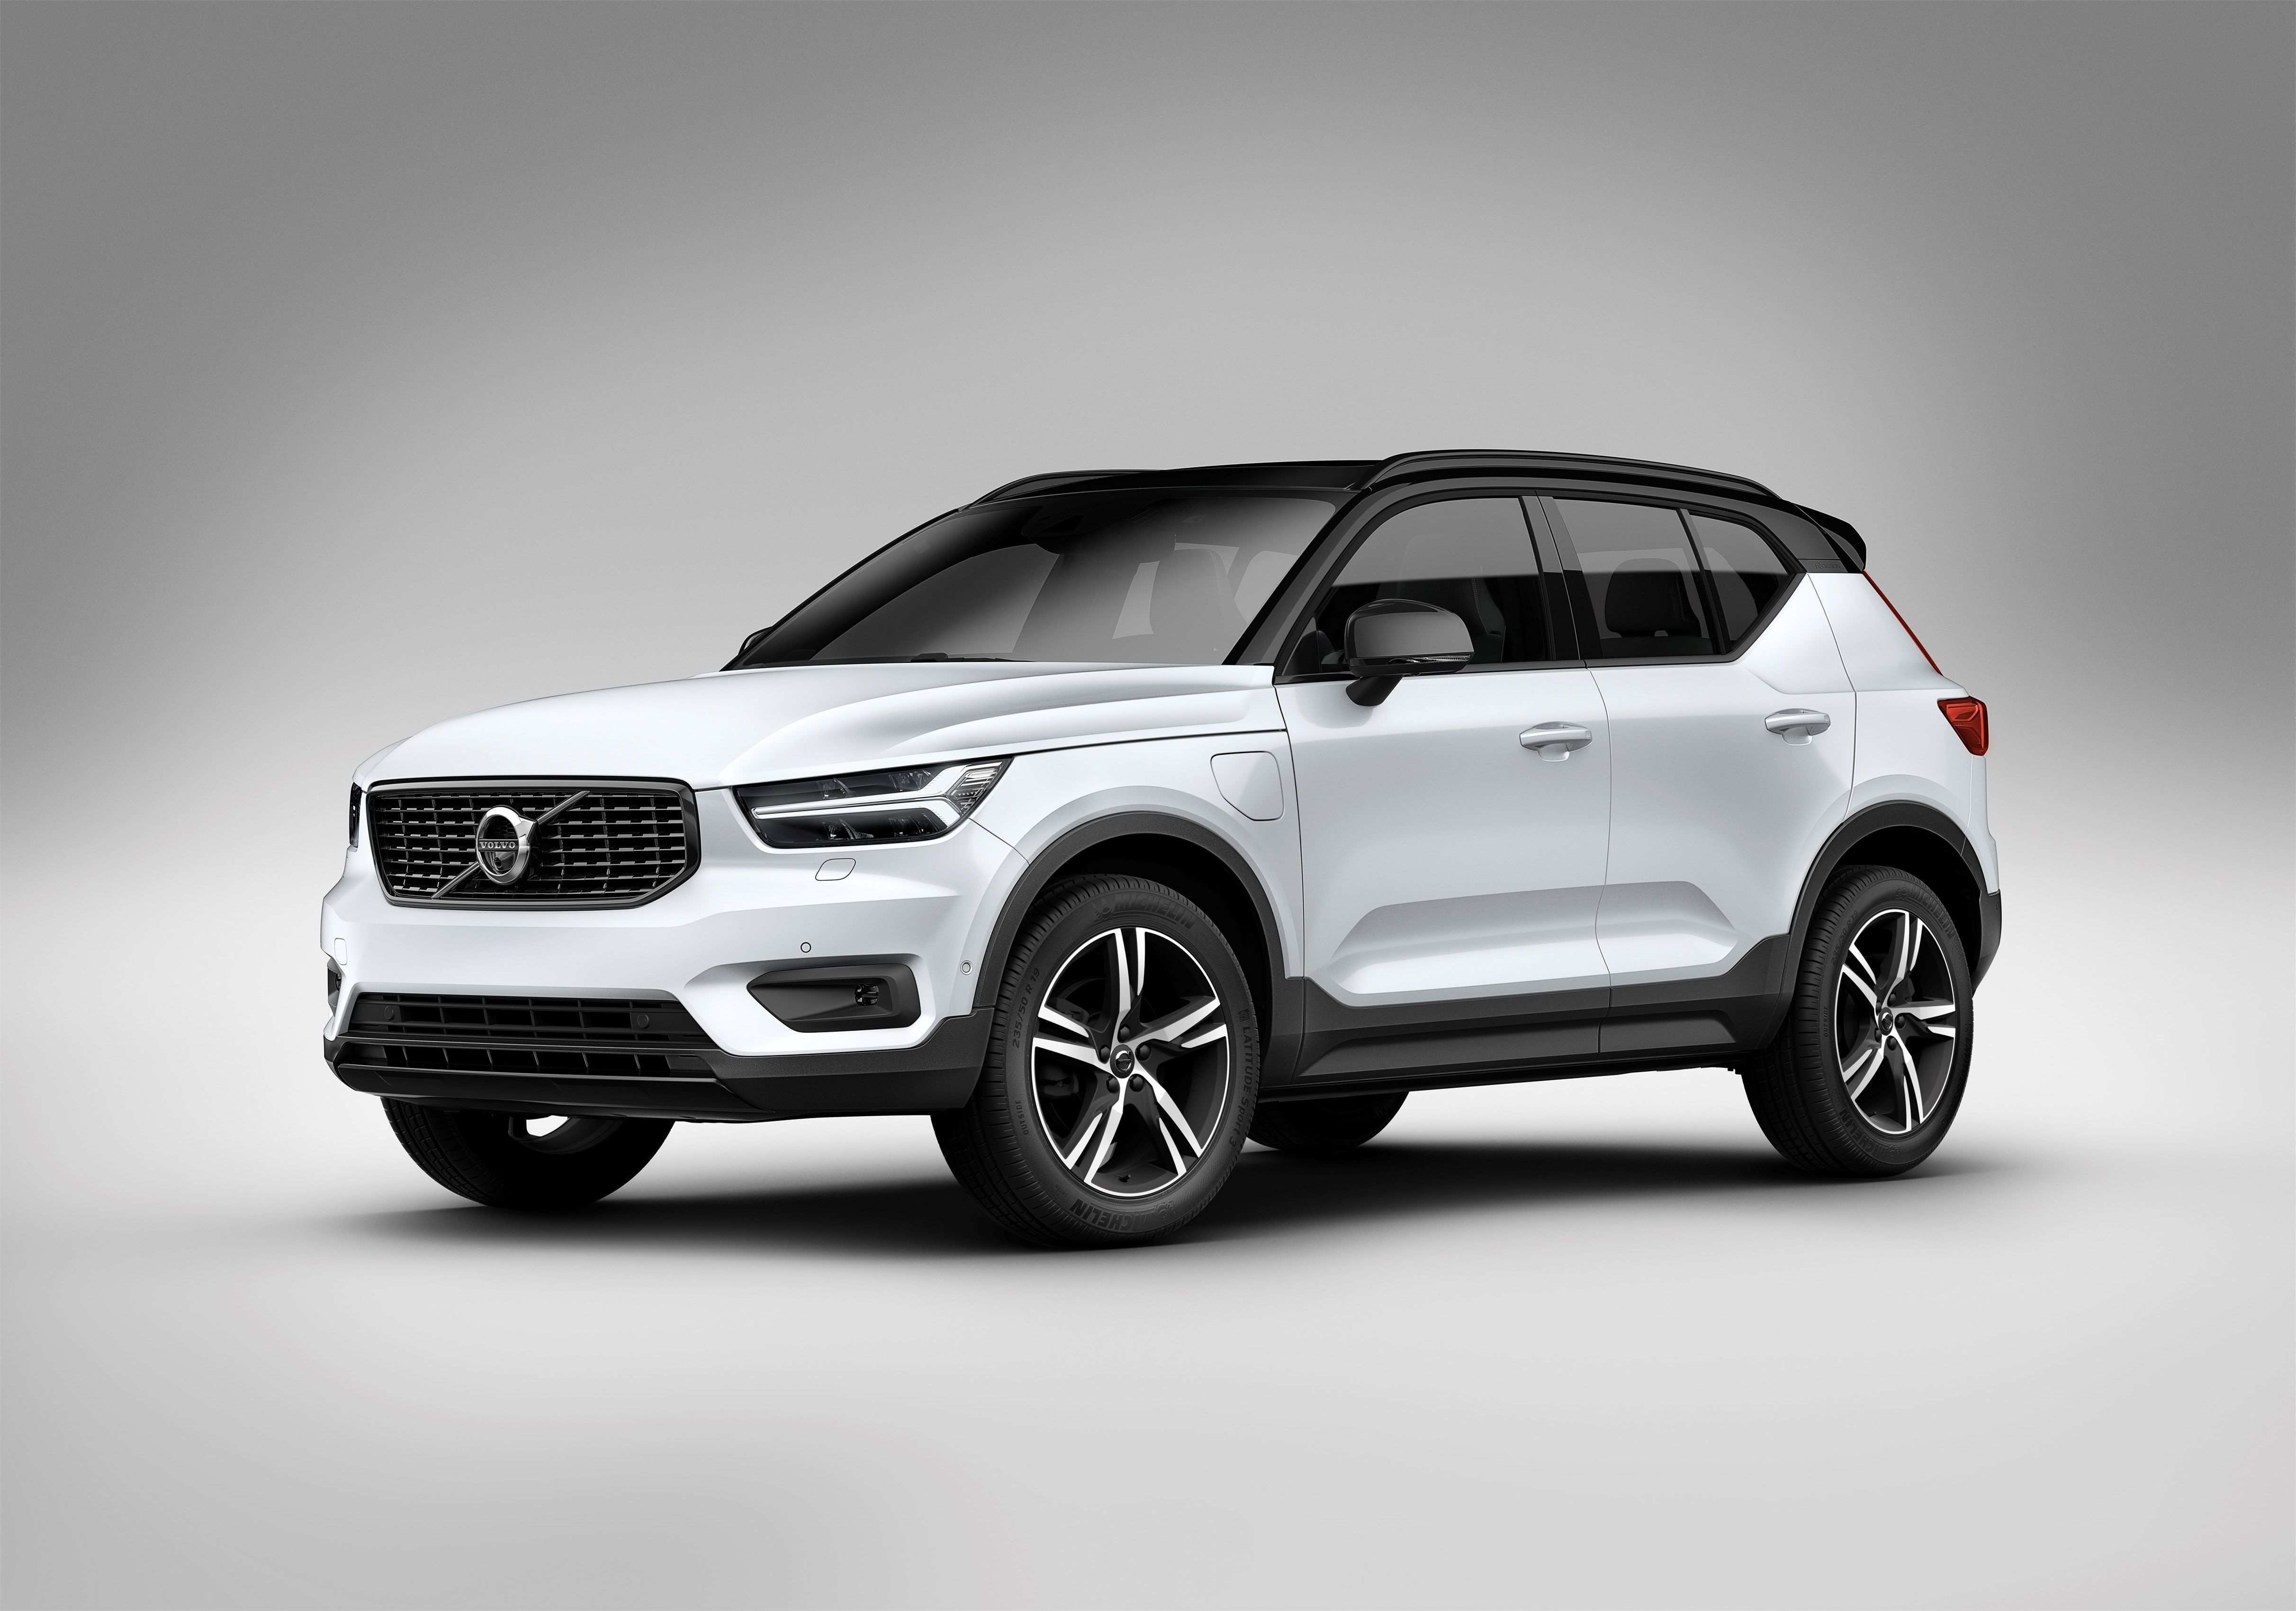 94 The Volvo Electric Cars By 2019 Redesign Style for Volvo Electric Cars By 2019 Redesign